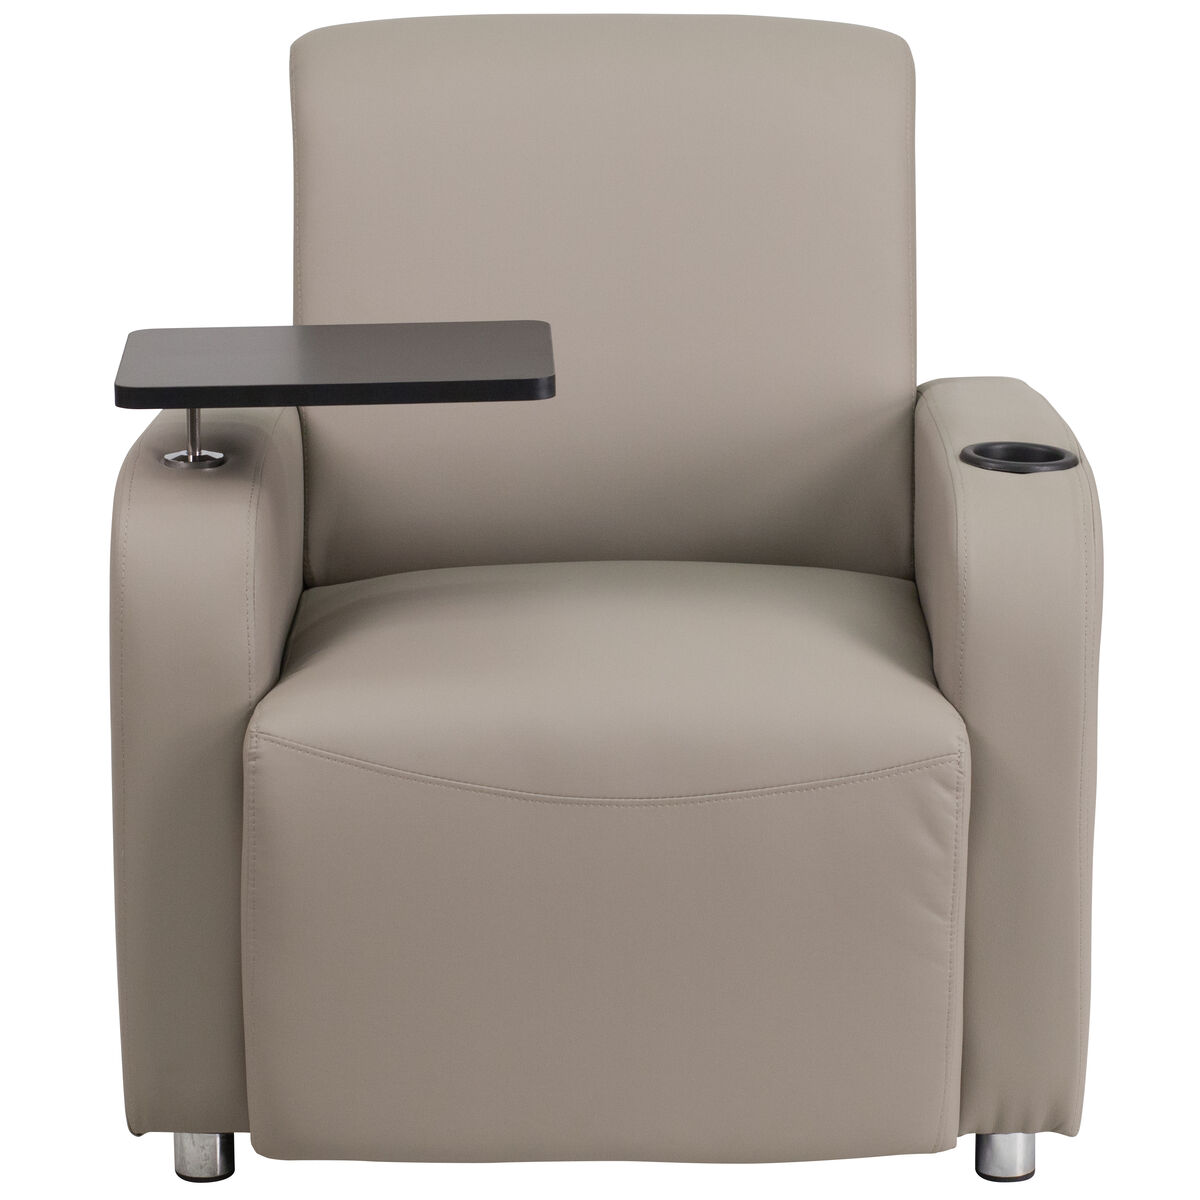 Gray Leather Tablet Chair Bt 8217 Gv Gg